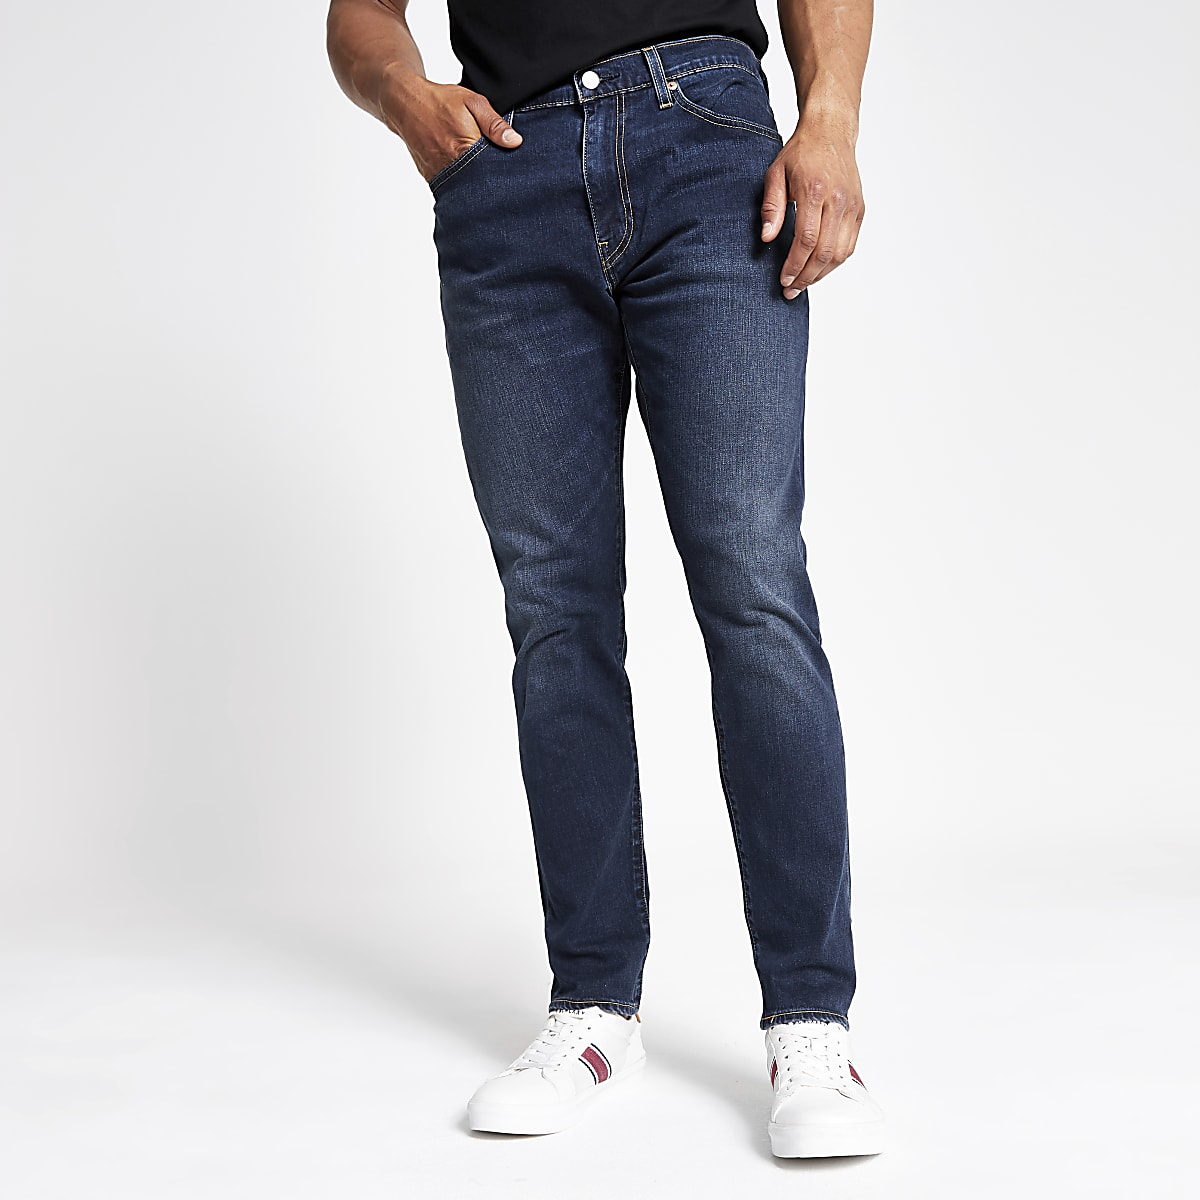 Levi's blue 512 tapered slim jeans